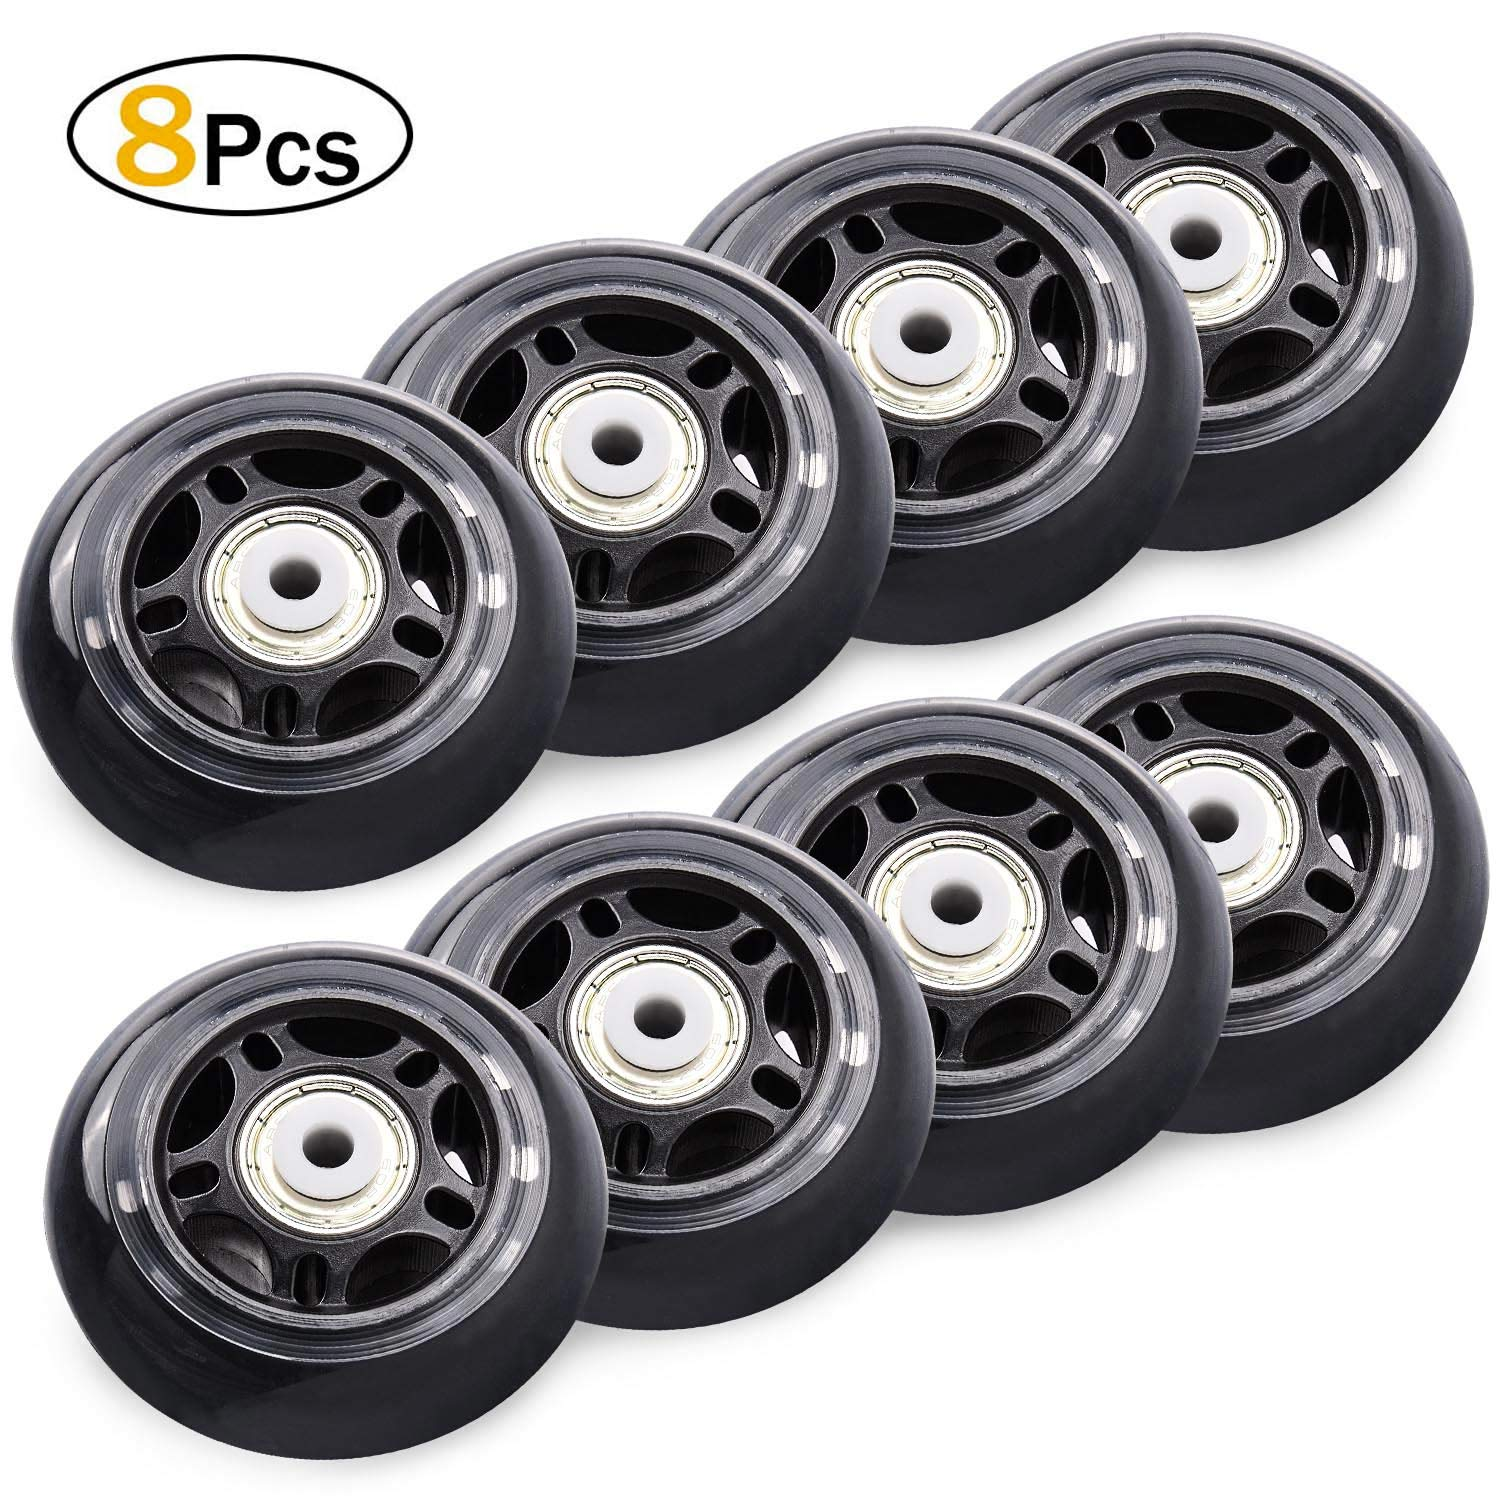 8 Pack Inline Skate Wheels, 70mm 82A Roller Skating Wheels, Heavy Duty Replacement Rollerblade Roller Blades with Bearings ABEC - Black by TOBWOLF